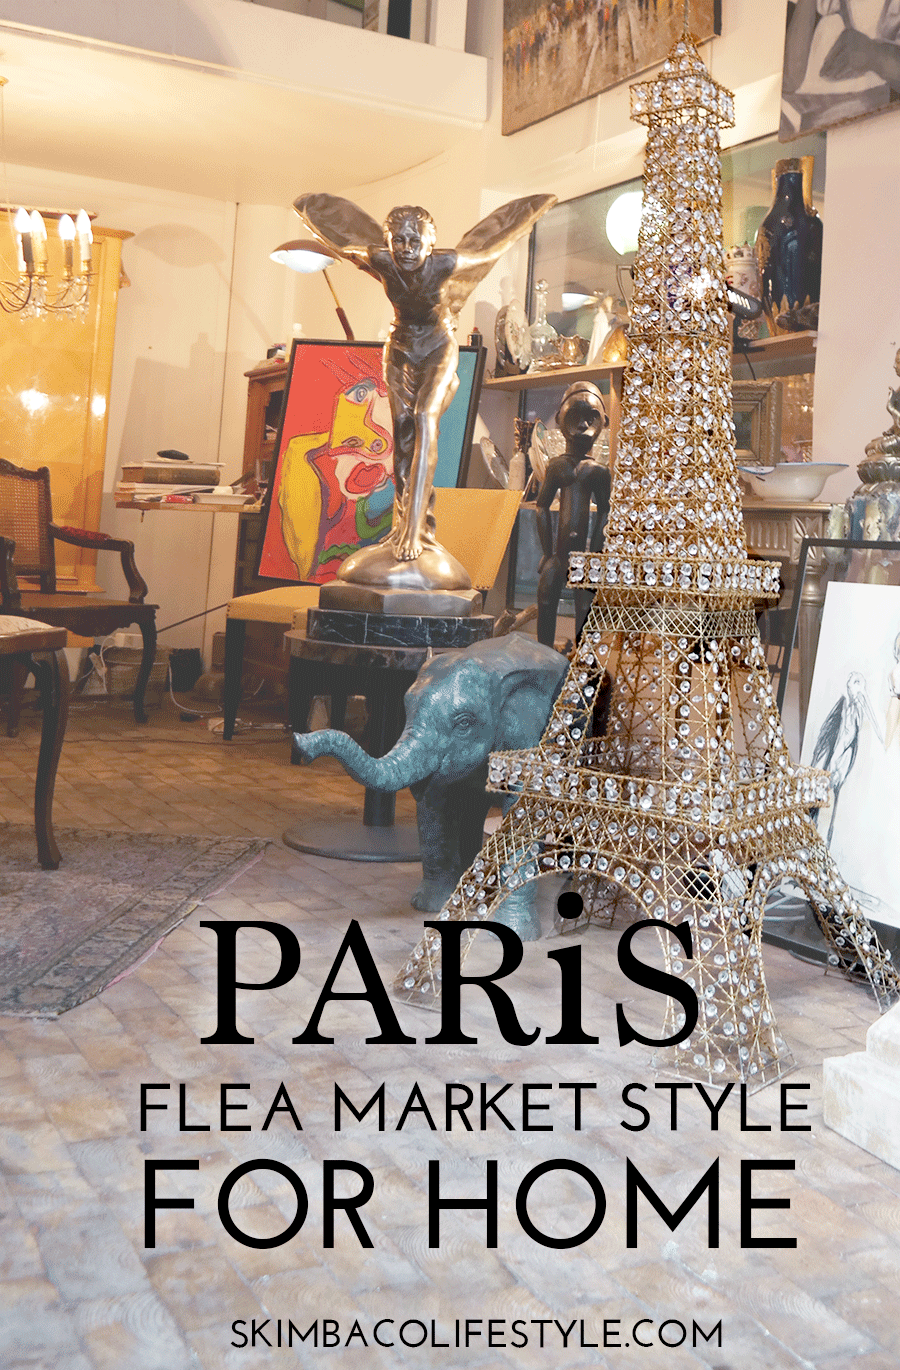 Paris Flea Market Style as Home Decorating Inspiration - Skimbaco ...